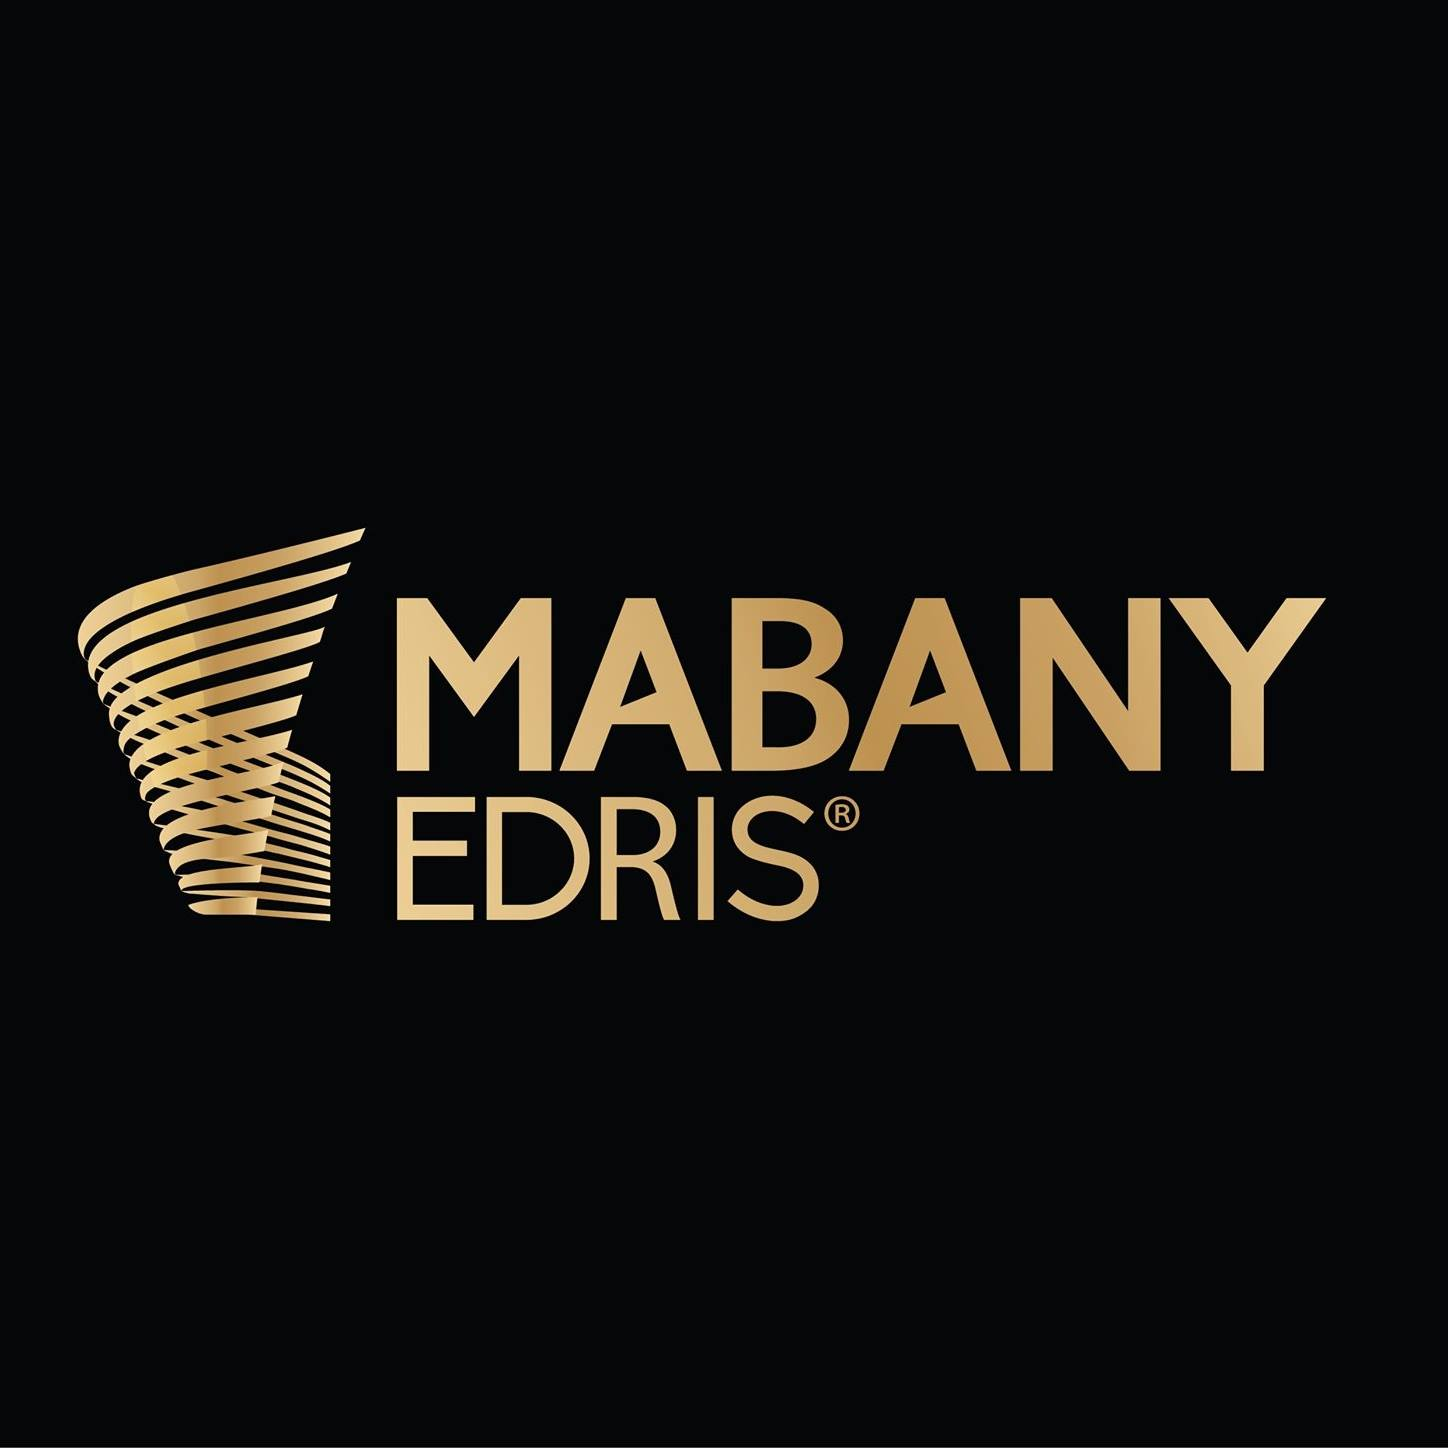 Mabany Edris for Real Estate Investment